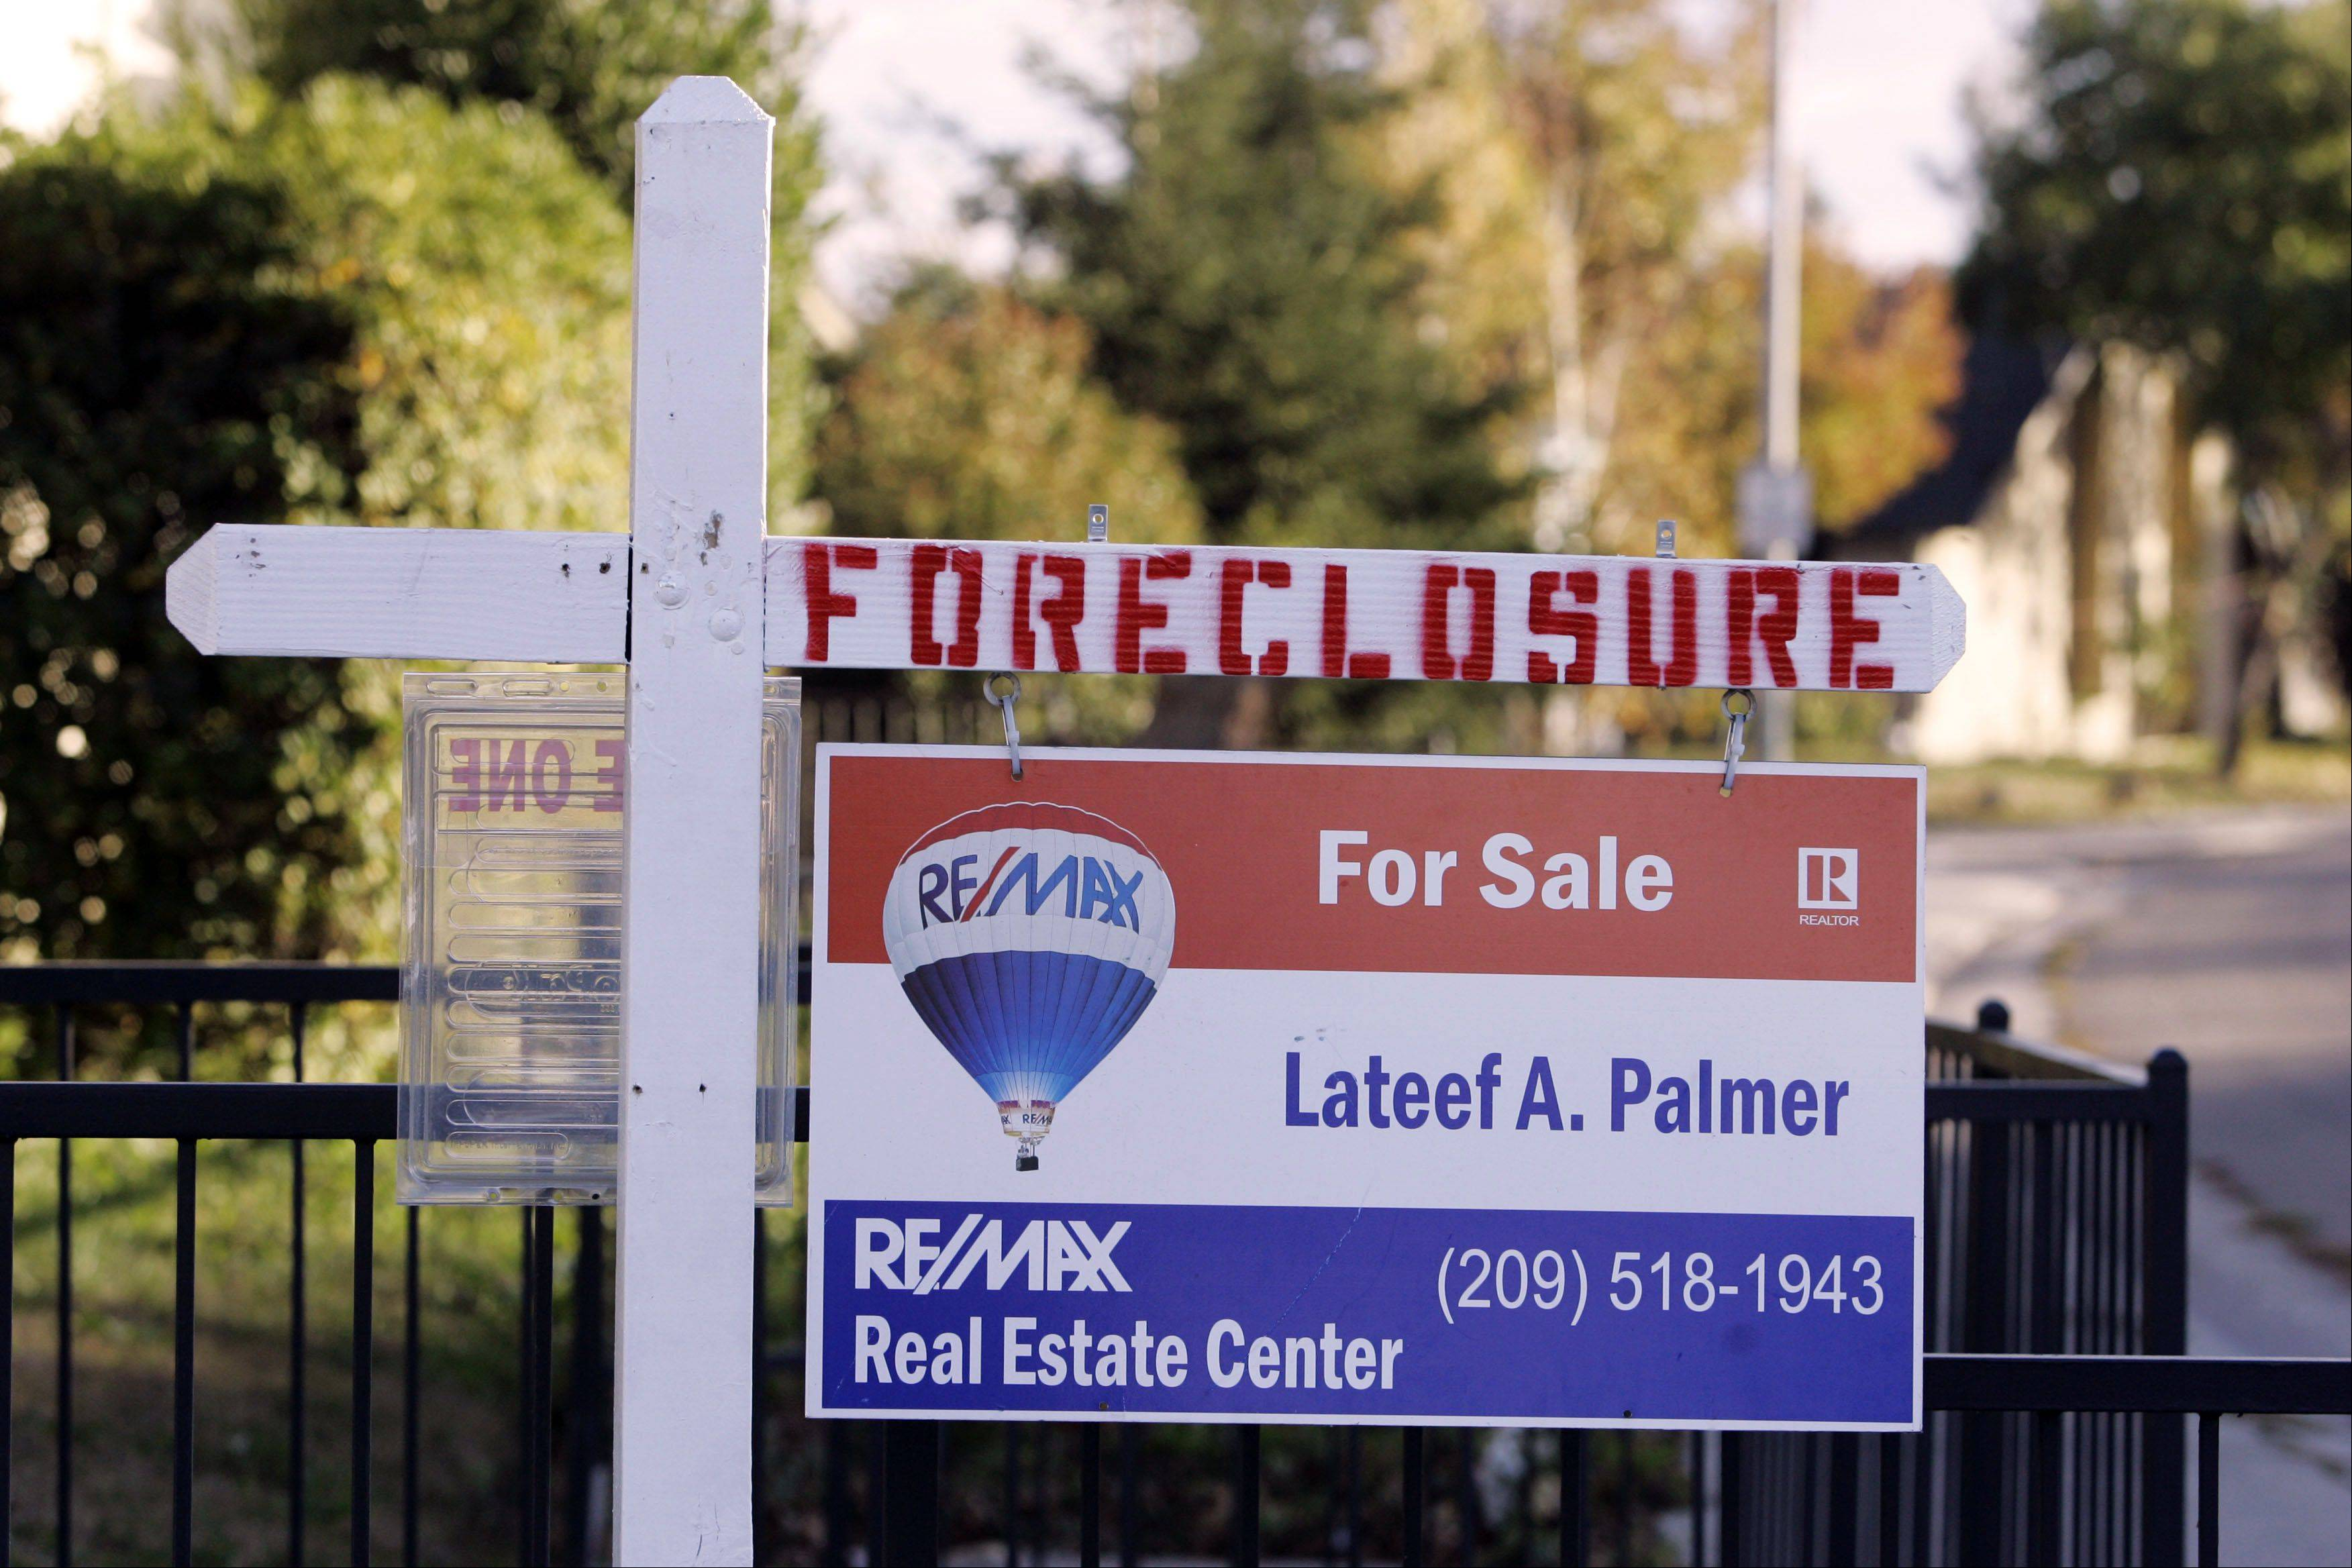 While foreclosures remain a concern in select states, the number of U.S. homes entering the path to foreclosure or winding up repossessed by lenders has fallen to levels not seen in more than six years.